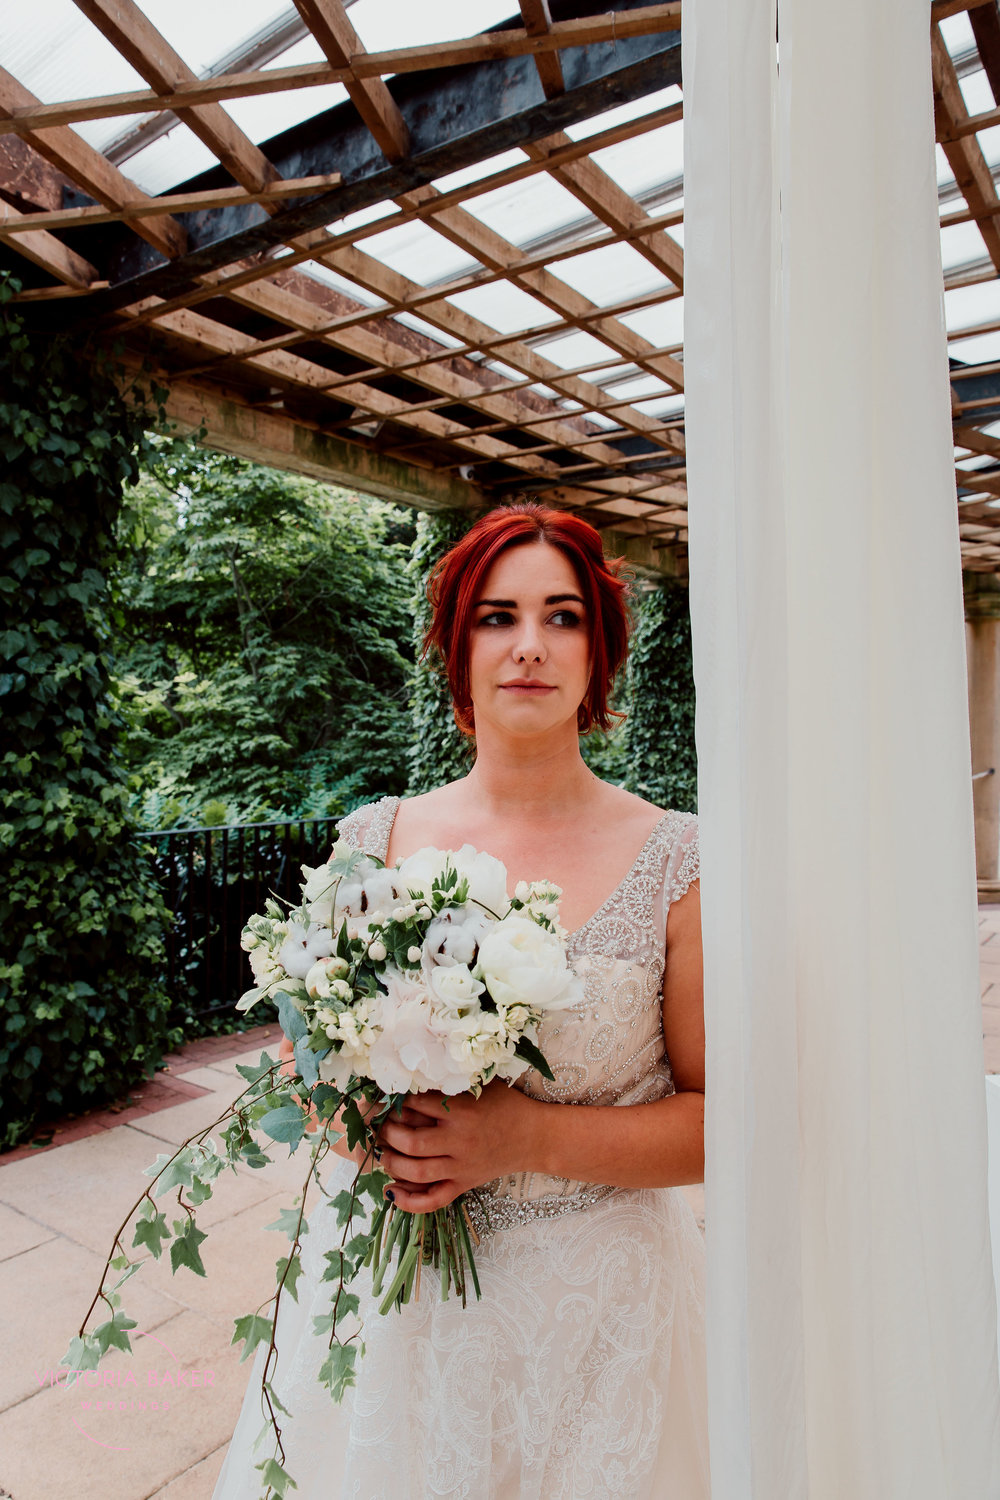 VICTORIABAKERWEDDINGS side eye.jpg